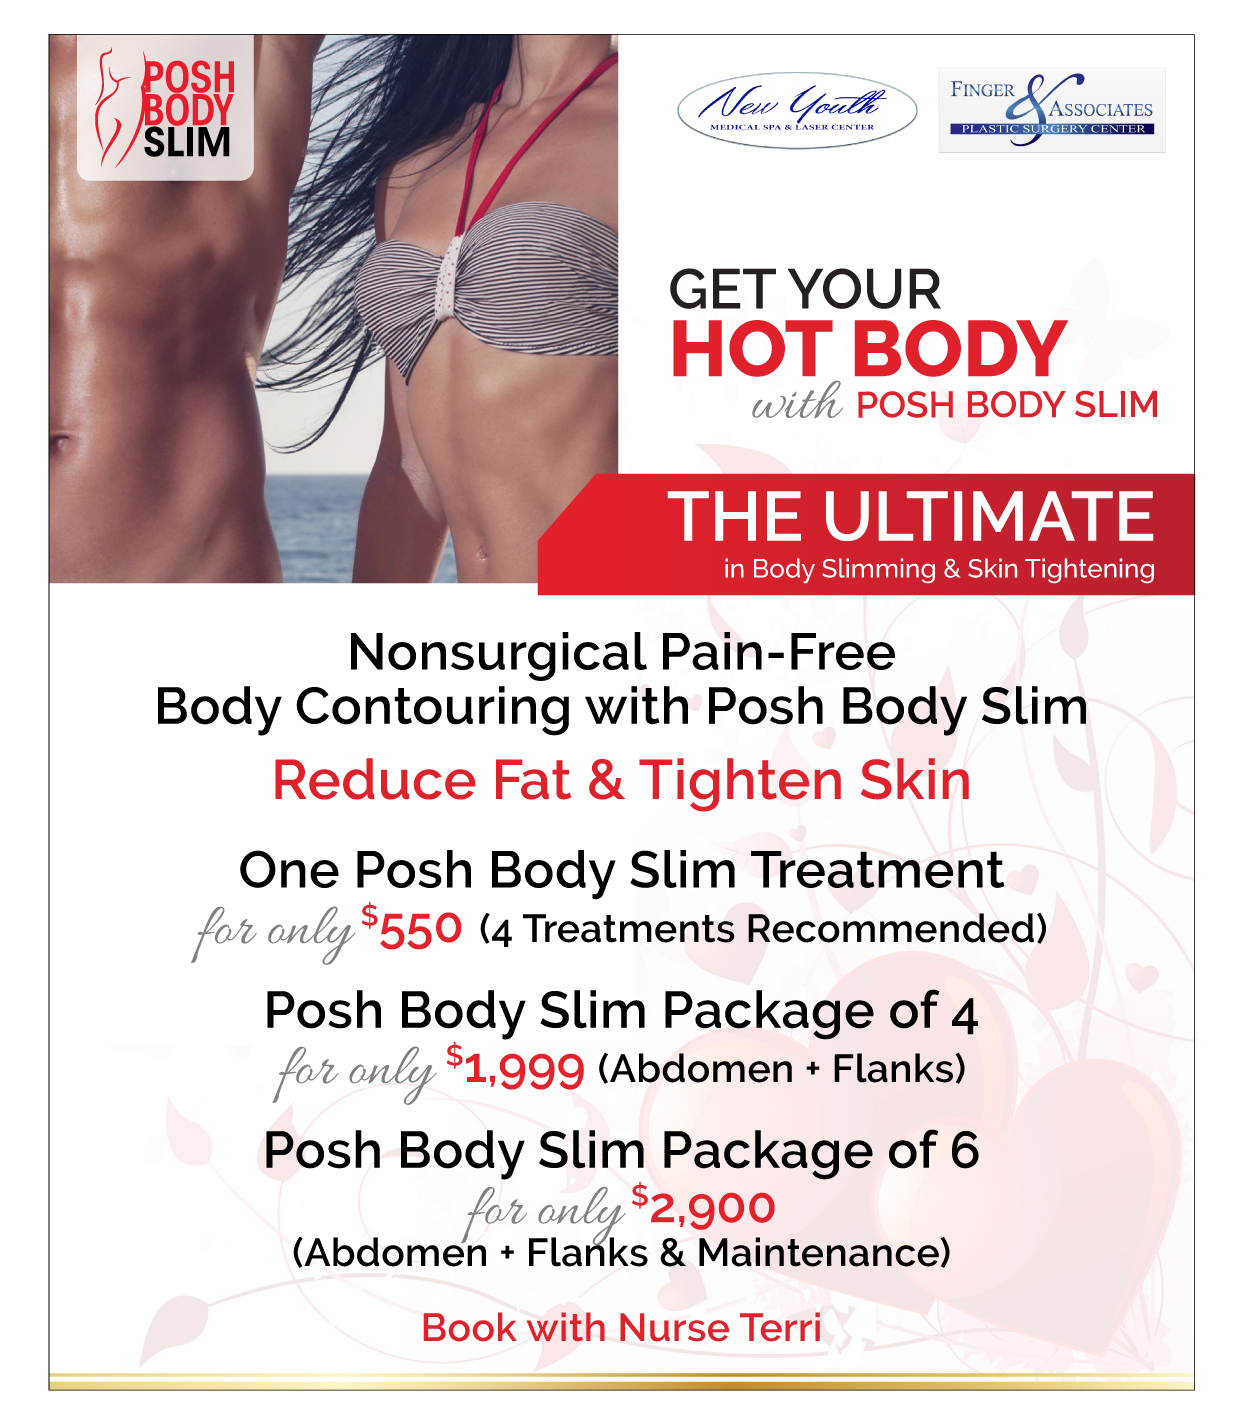 Finger and Associates and New Youth Medical Spa Specials on Posh Body Slim